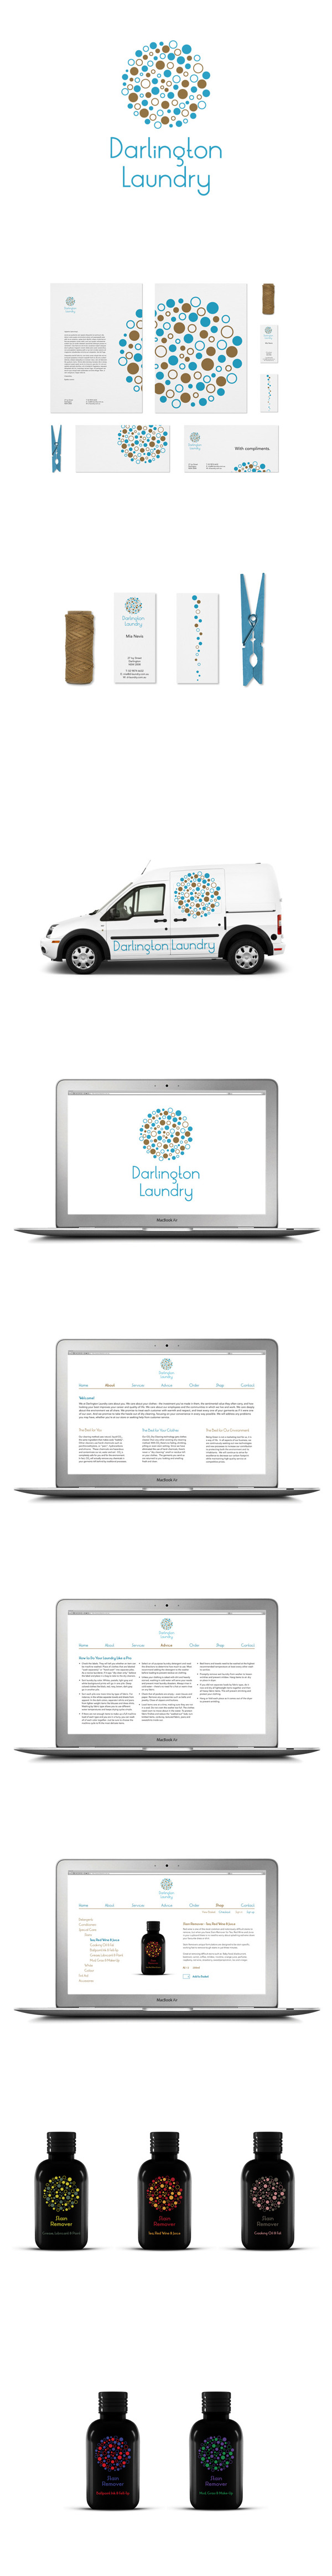 Darlington Laundry Visual Identity Website Packaging Laundry Laundry Business Vintage Laundry Room